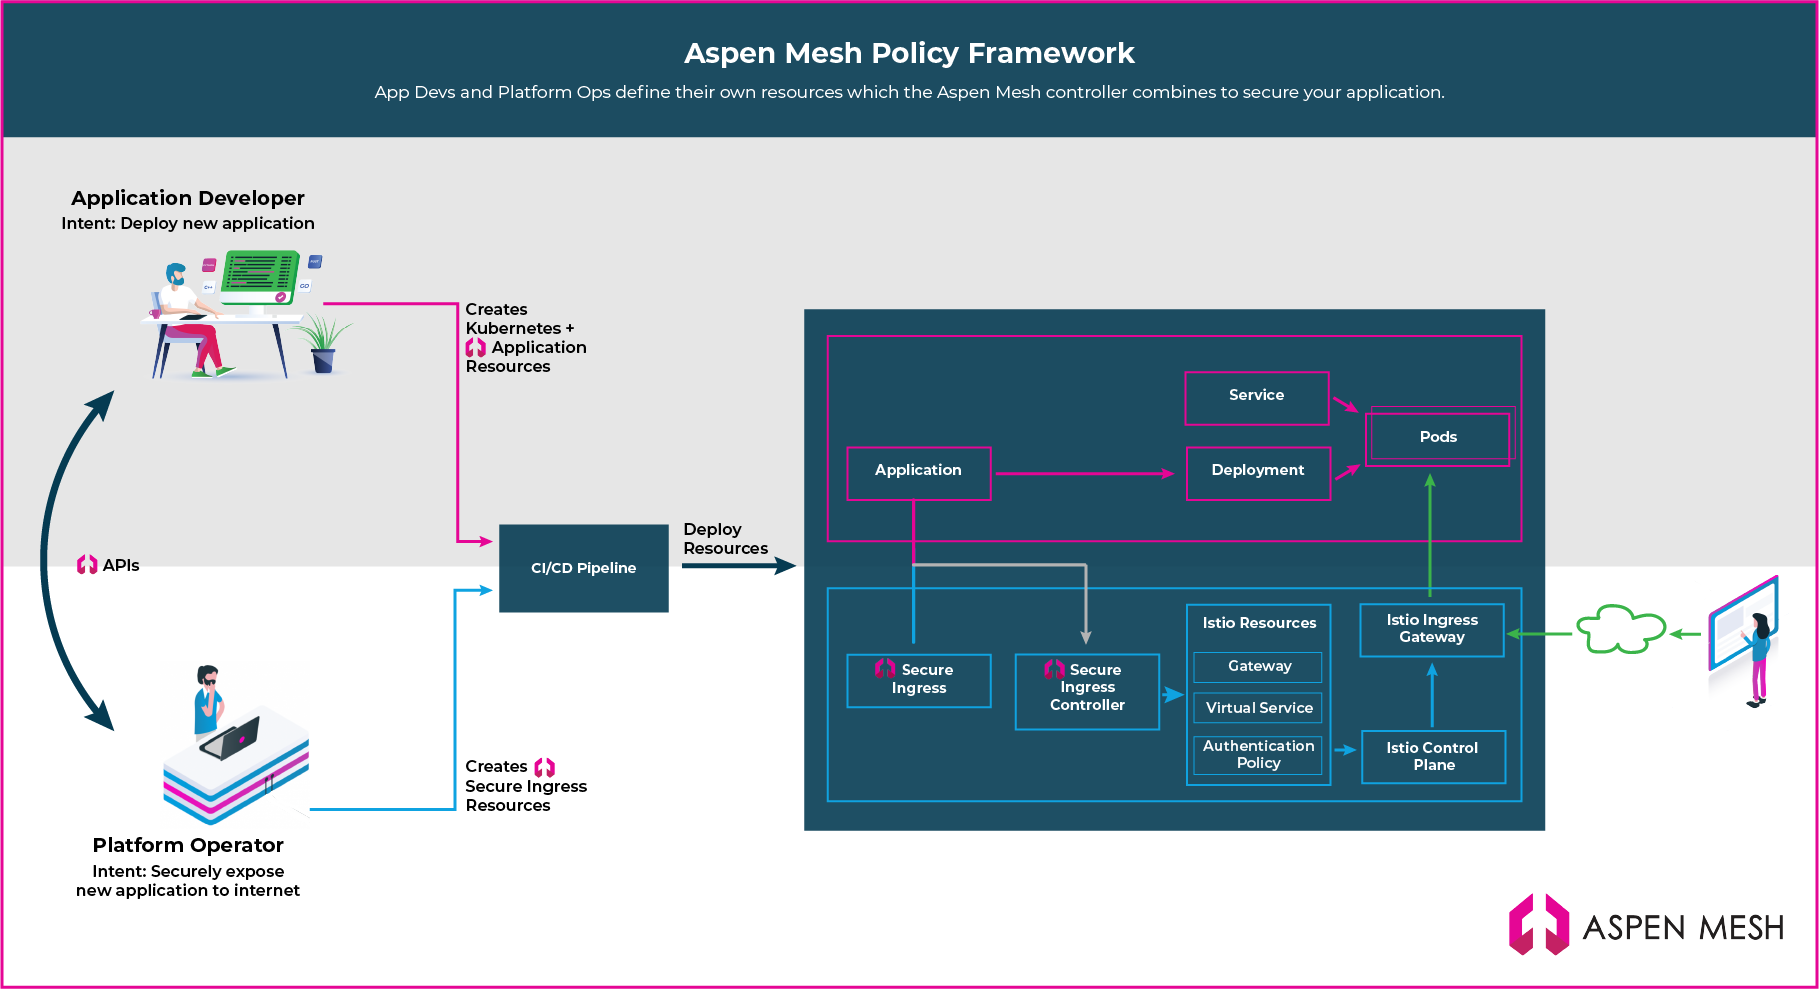 Aspen Mesh Policy Framework - After